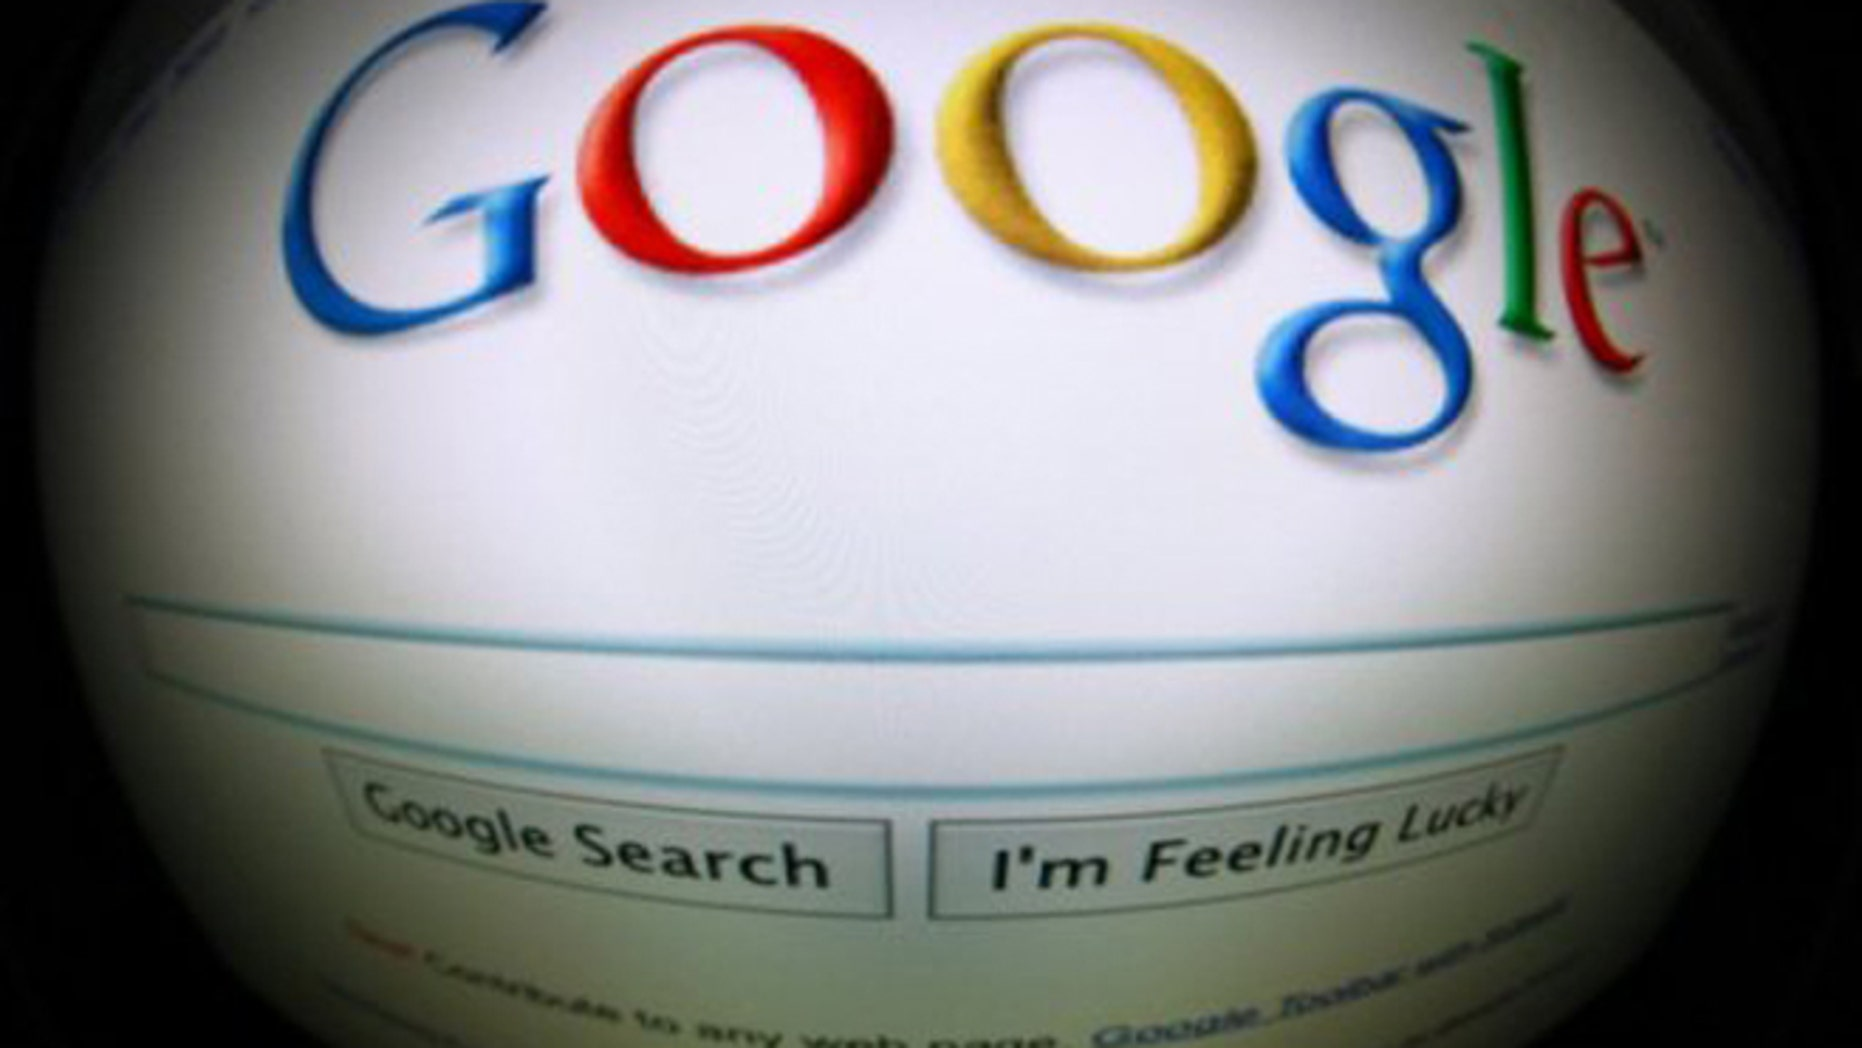 Google has begun barring access in Malaysia to an anti-Islamic film that has sparked fury across the Muslim world.